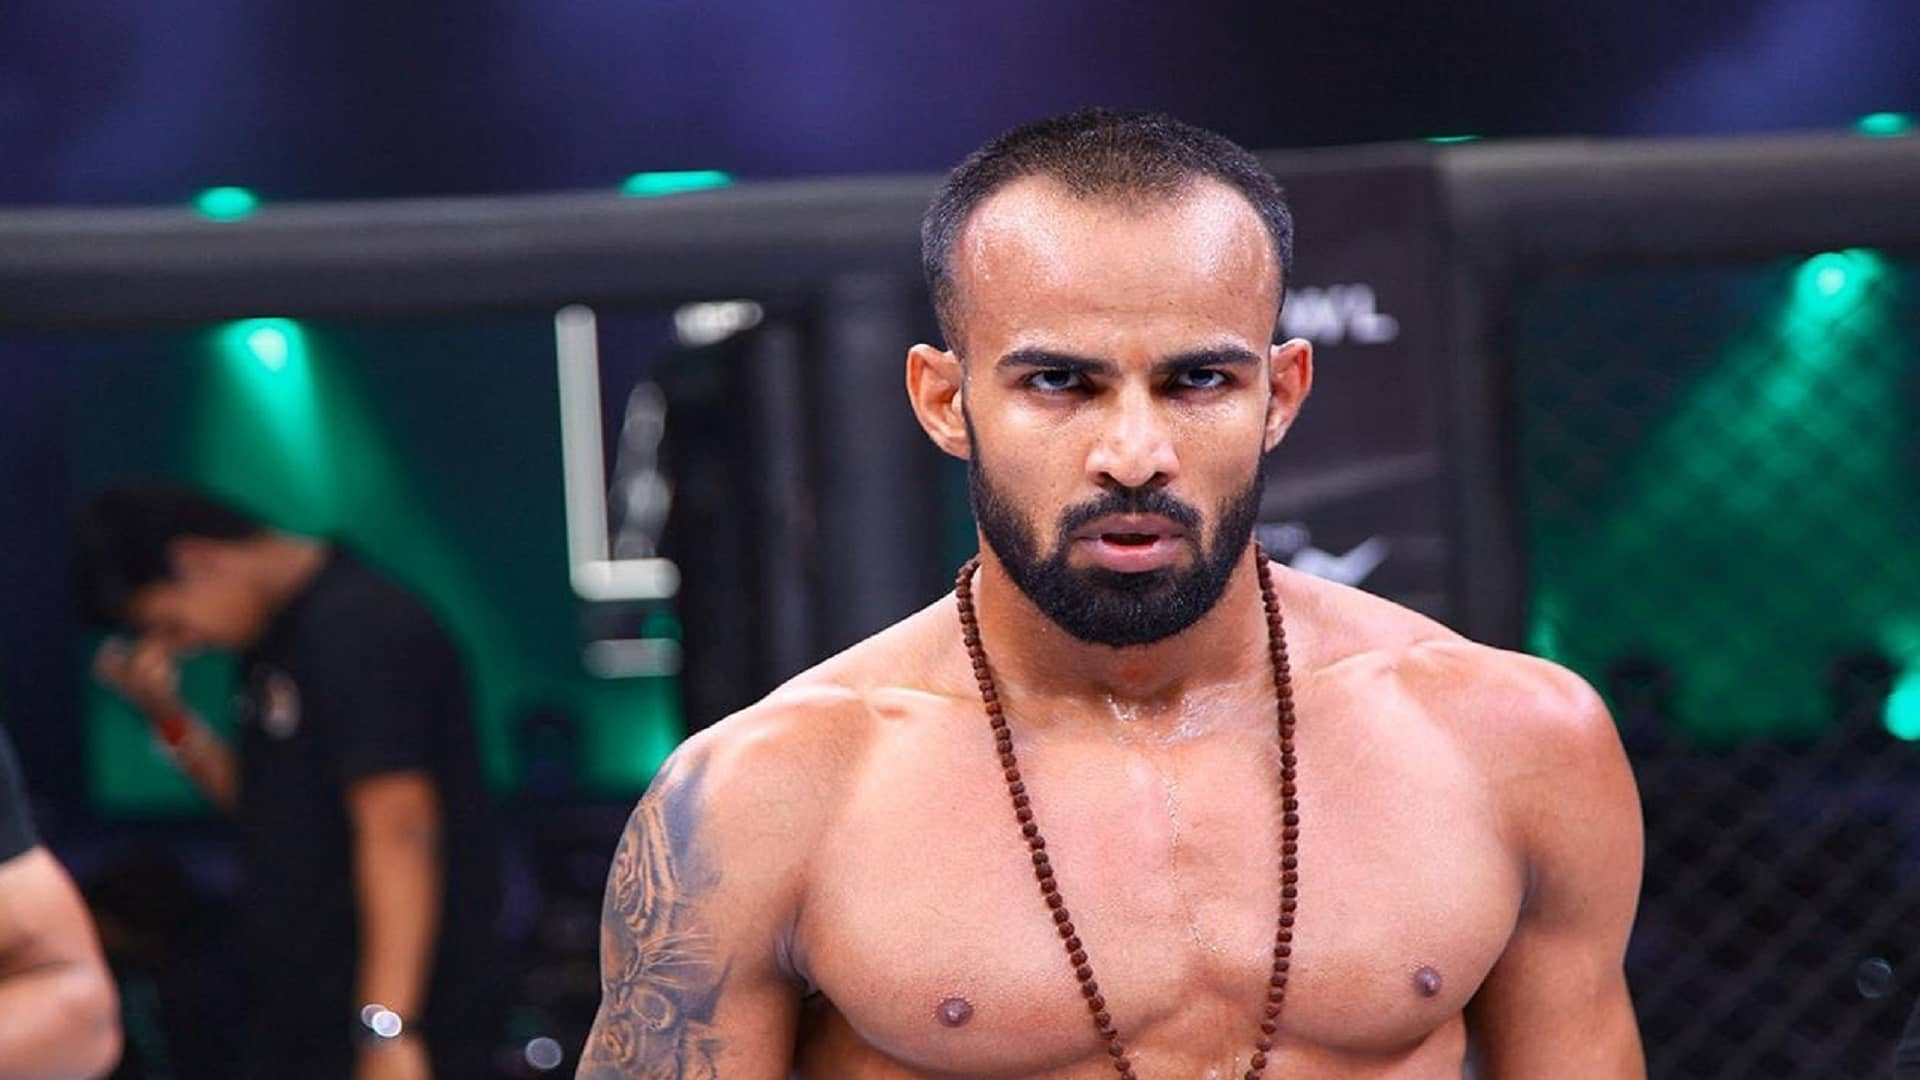 https://lockerroom.in/blog/view/Dhruv-Chaudhary-Indian-MMA-Story-So-Far